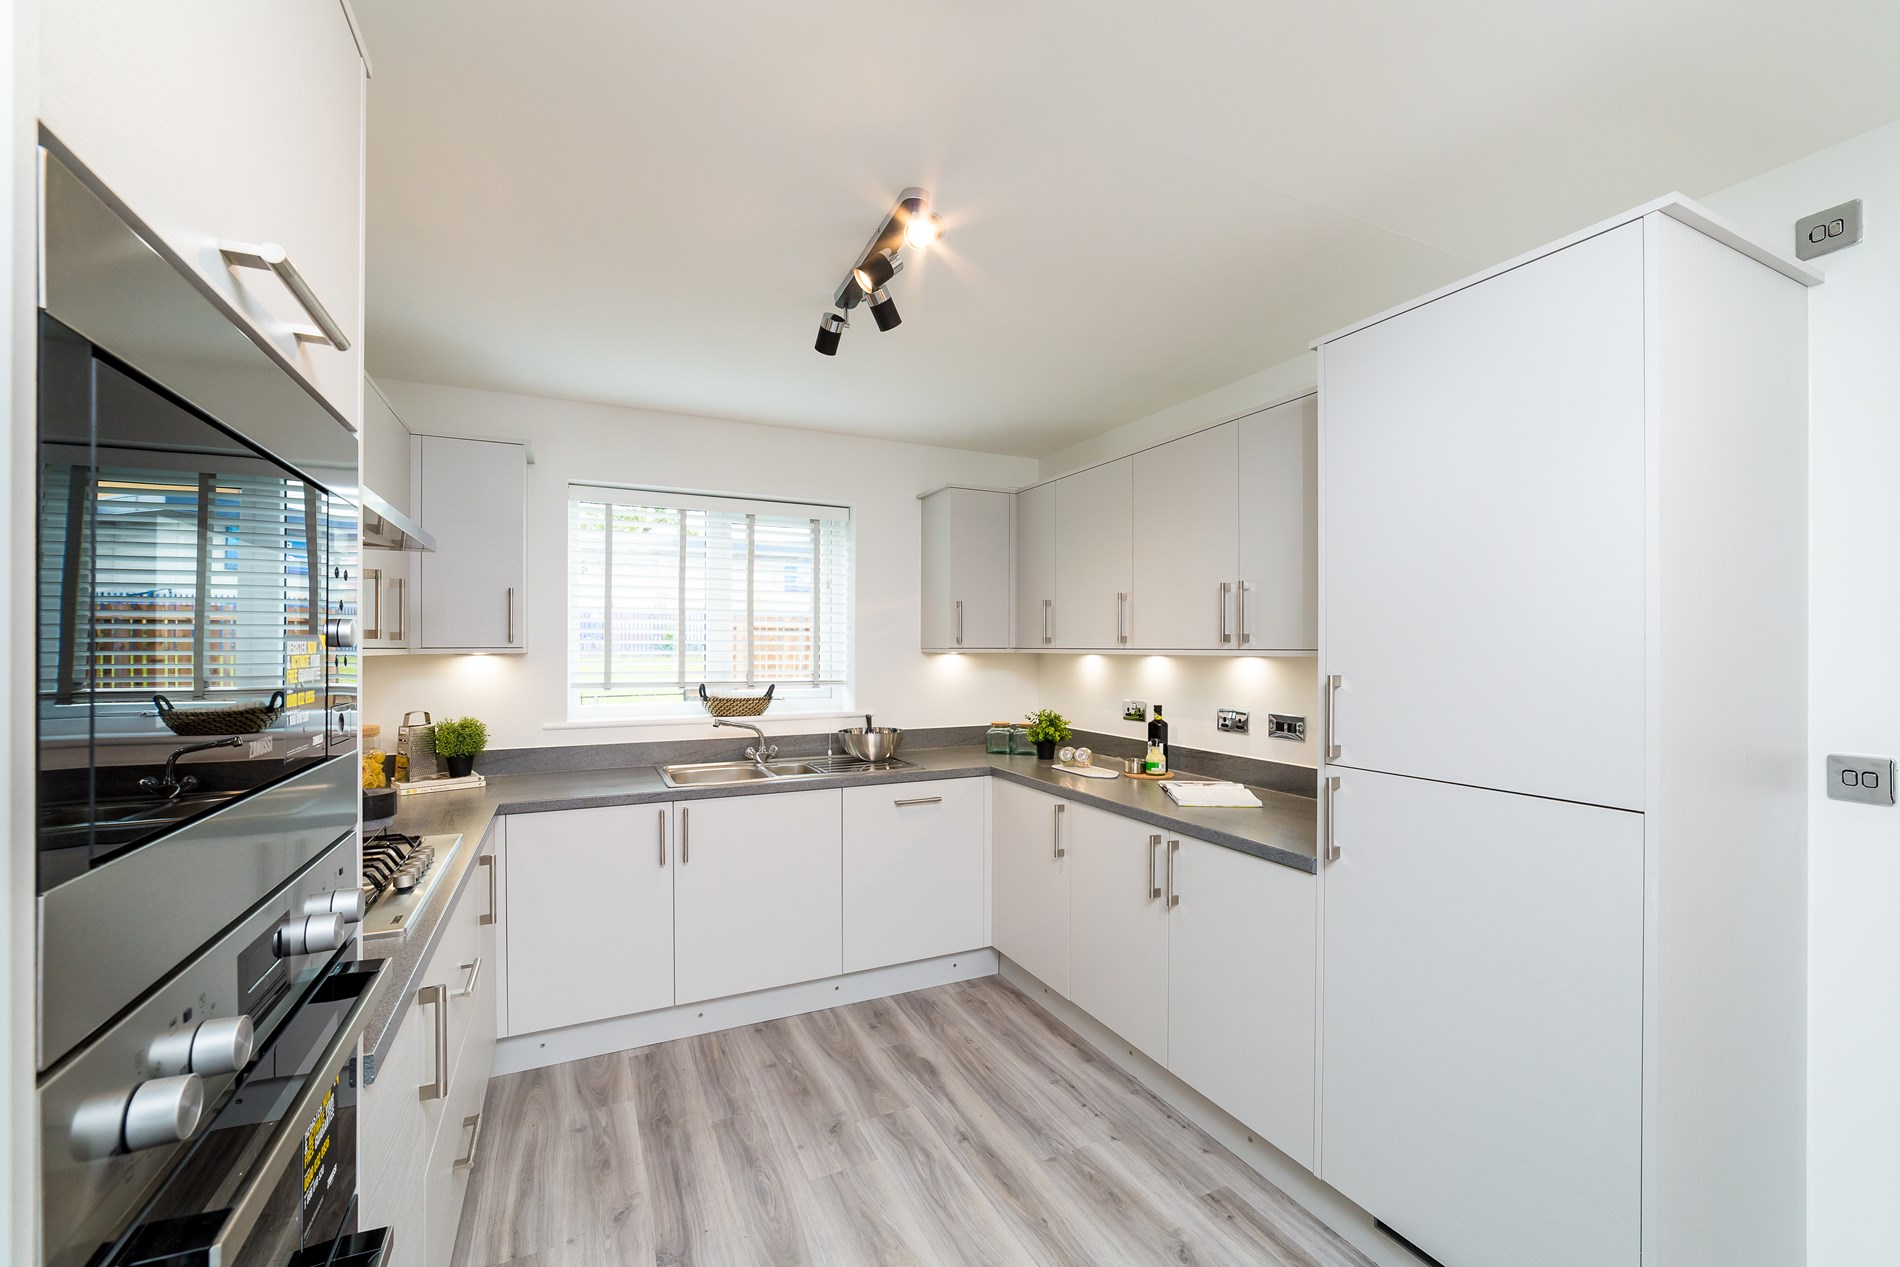 23.05.18.-Orchard-Quarter-Showhome-IMG_1670.jpg